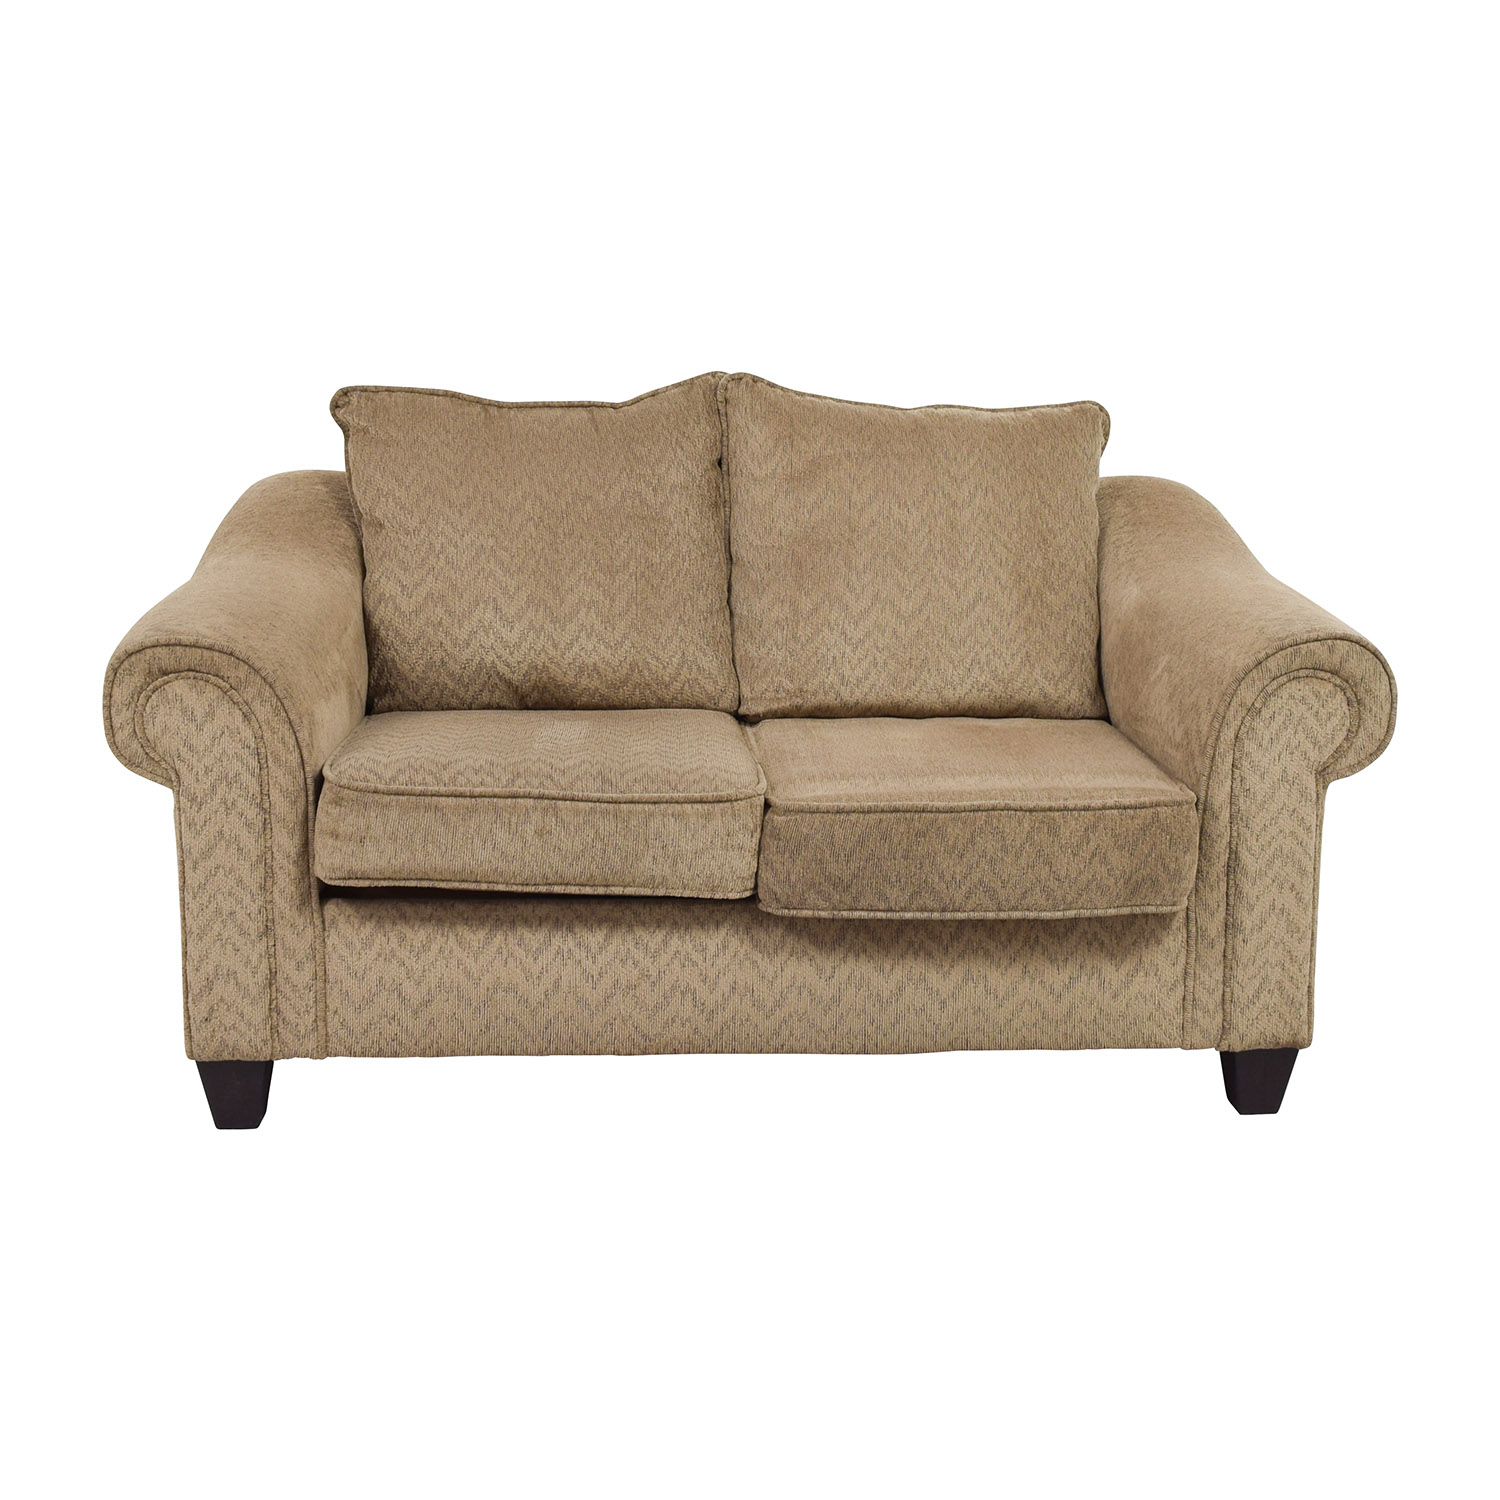 79% OFF Bob s Furniture Bob S Furniture Two Toned Brown Loveseat